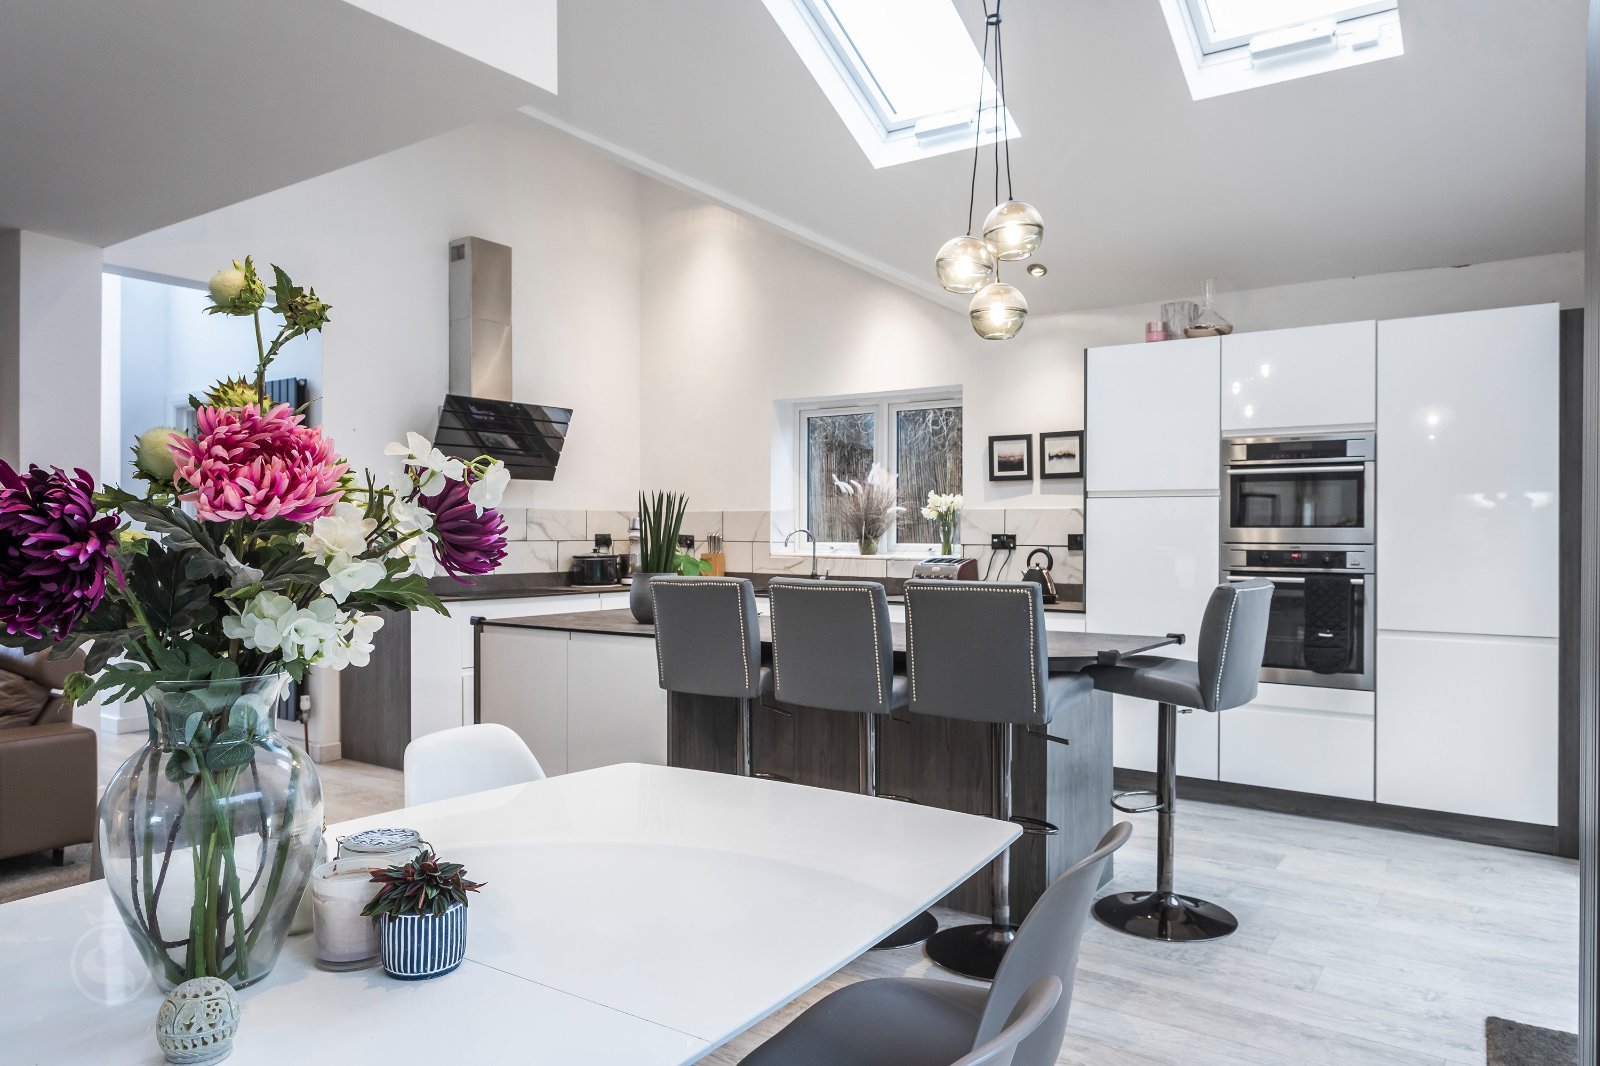 4 bed house for sale in Dansie Close, Ashley Cross 0